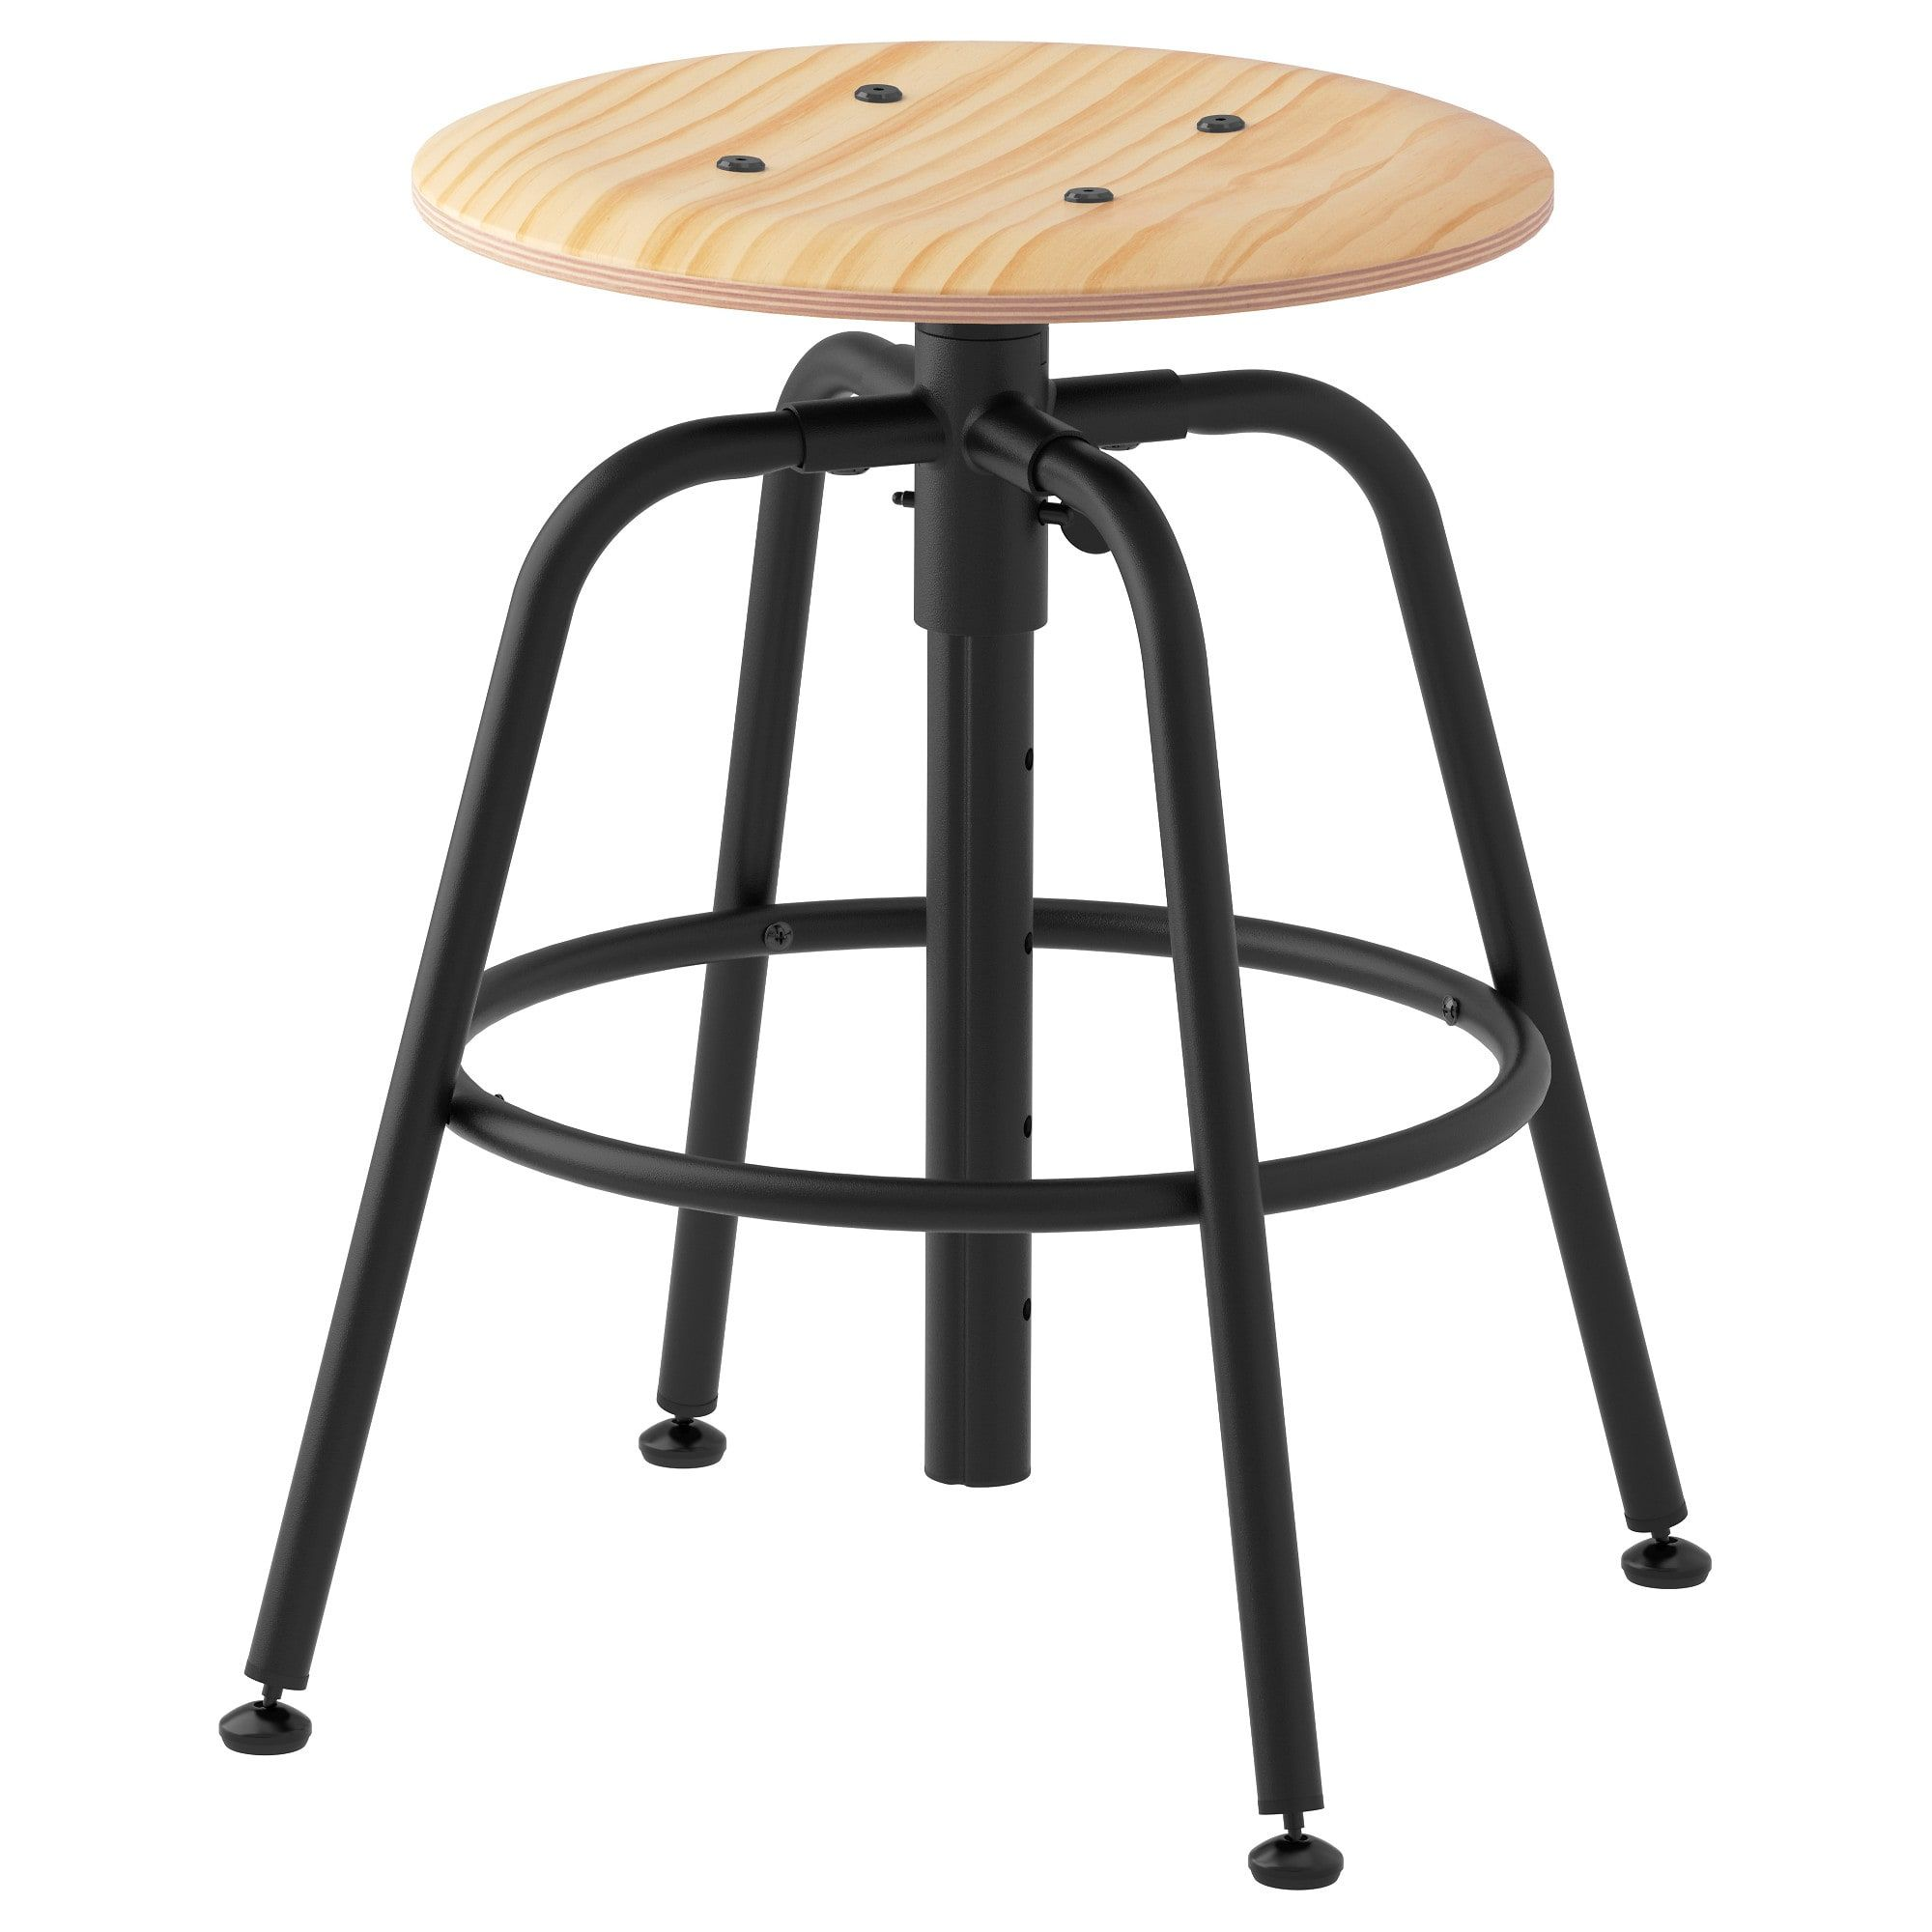 KULLABERG Stool, pine, black IKEA Industrial style